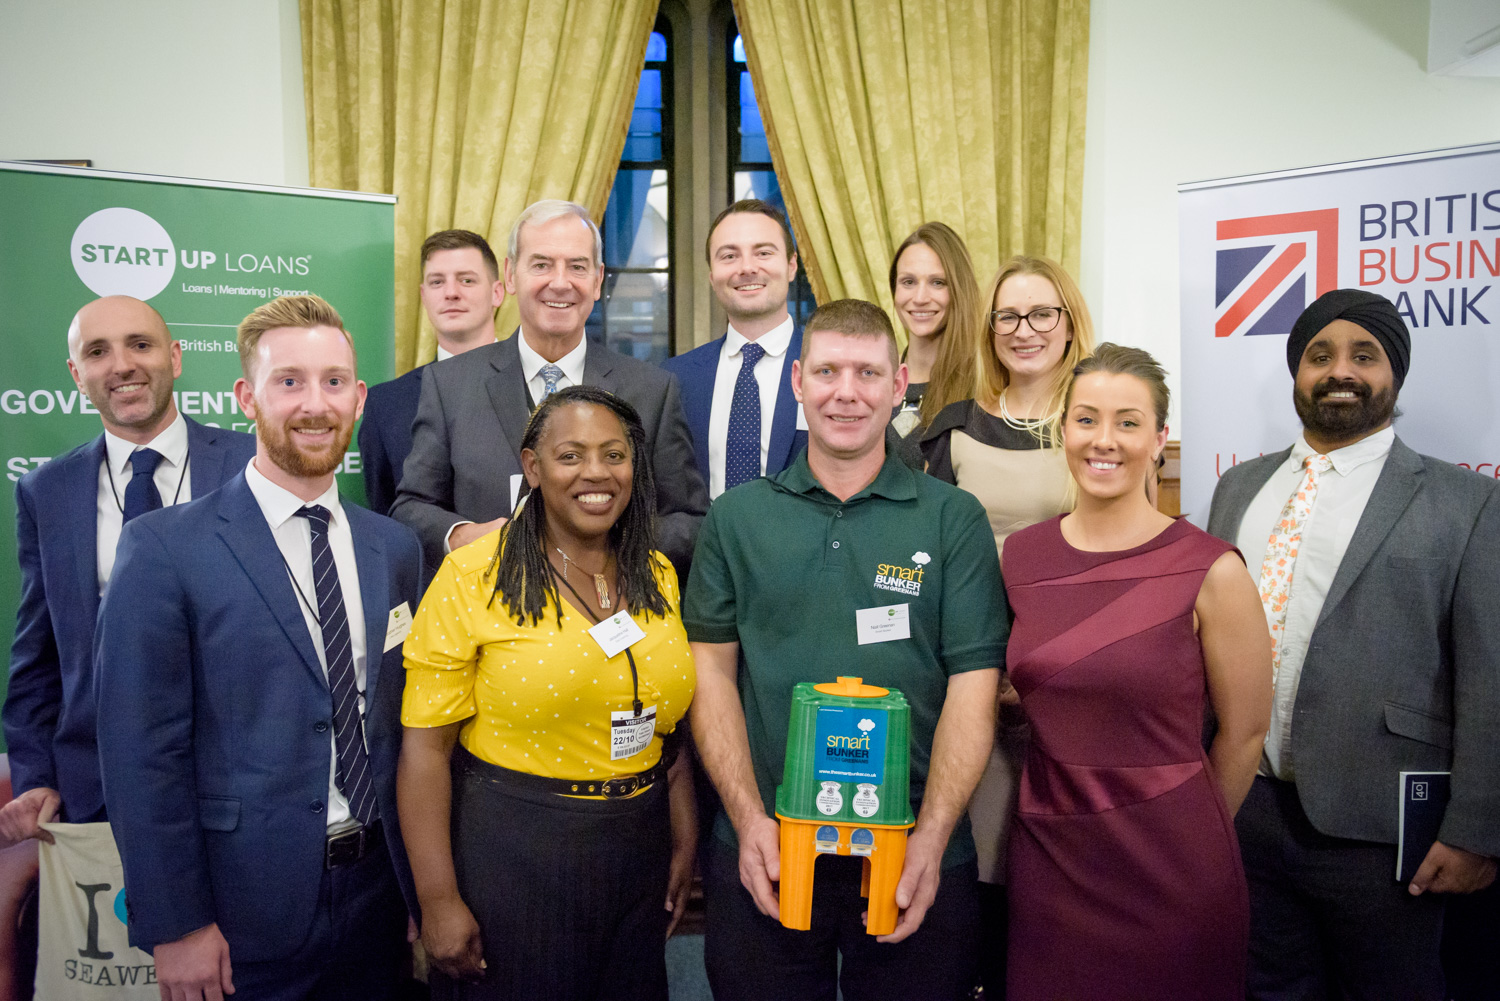 SME Start Up Loan Ambassadors with Lord Smith